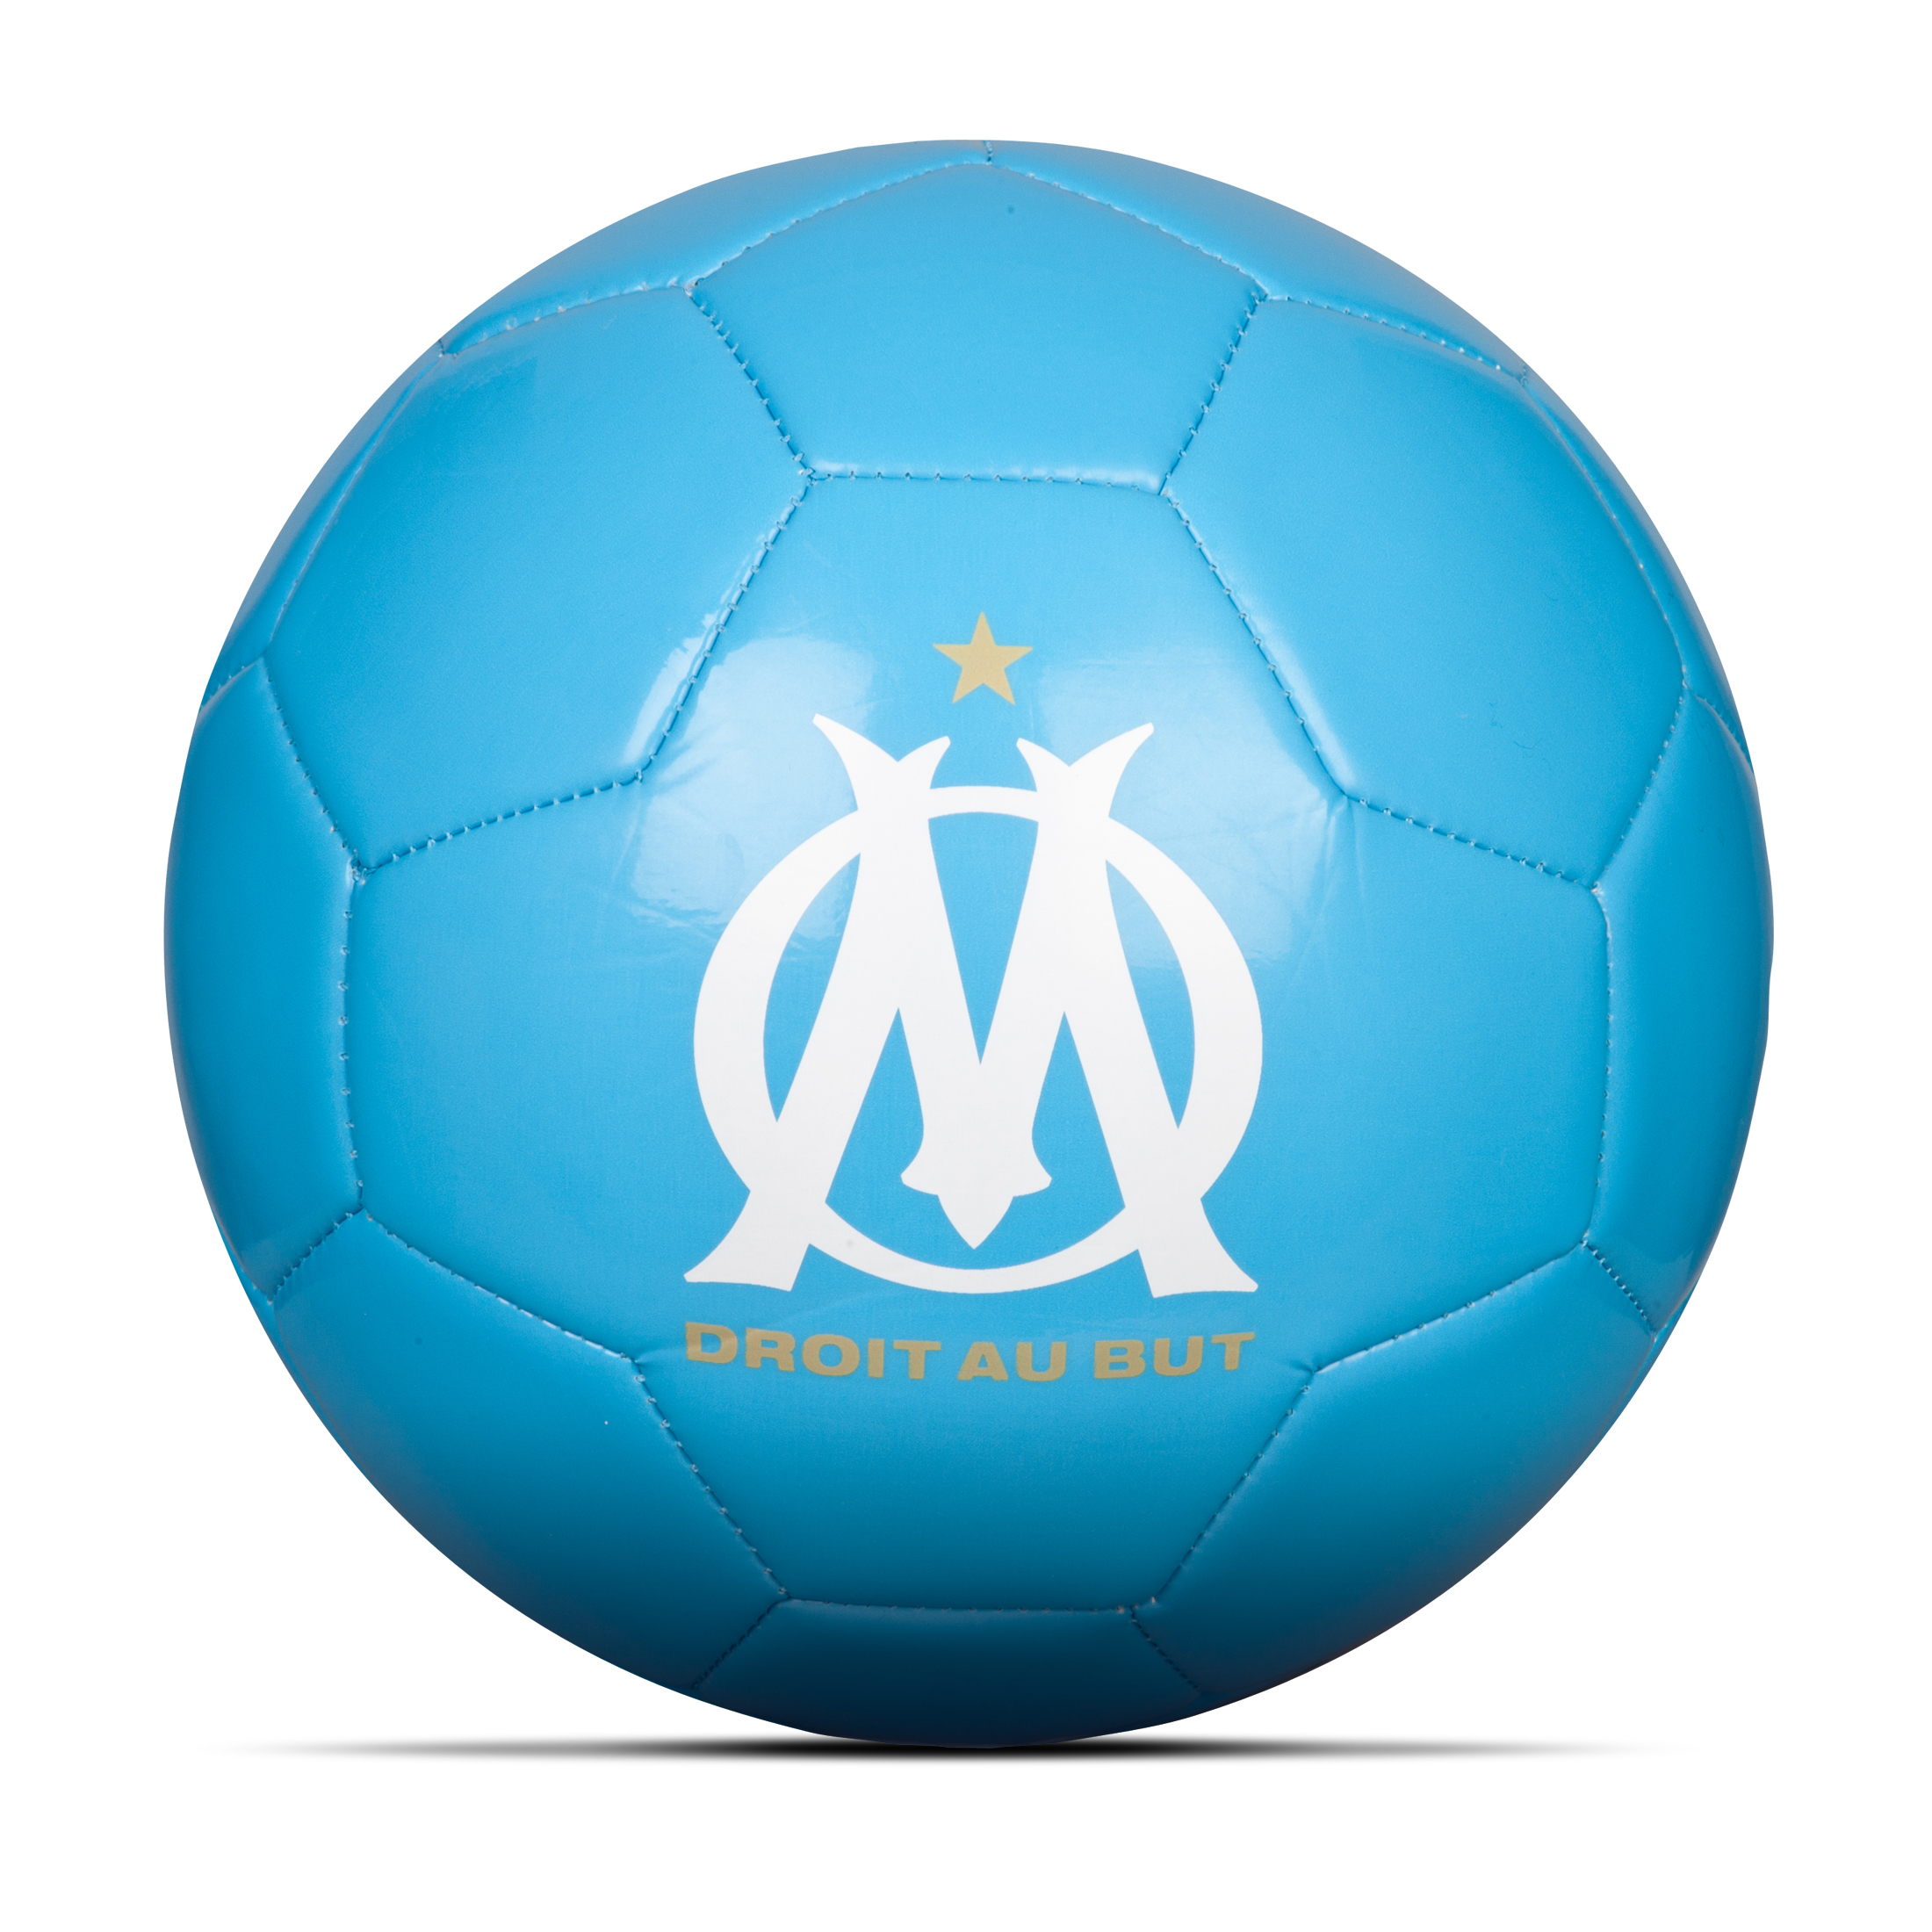 Olympique de Marseille Phantom V Football Size 5 - Blue/Black